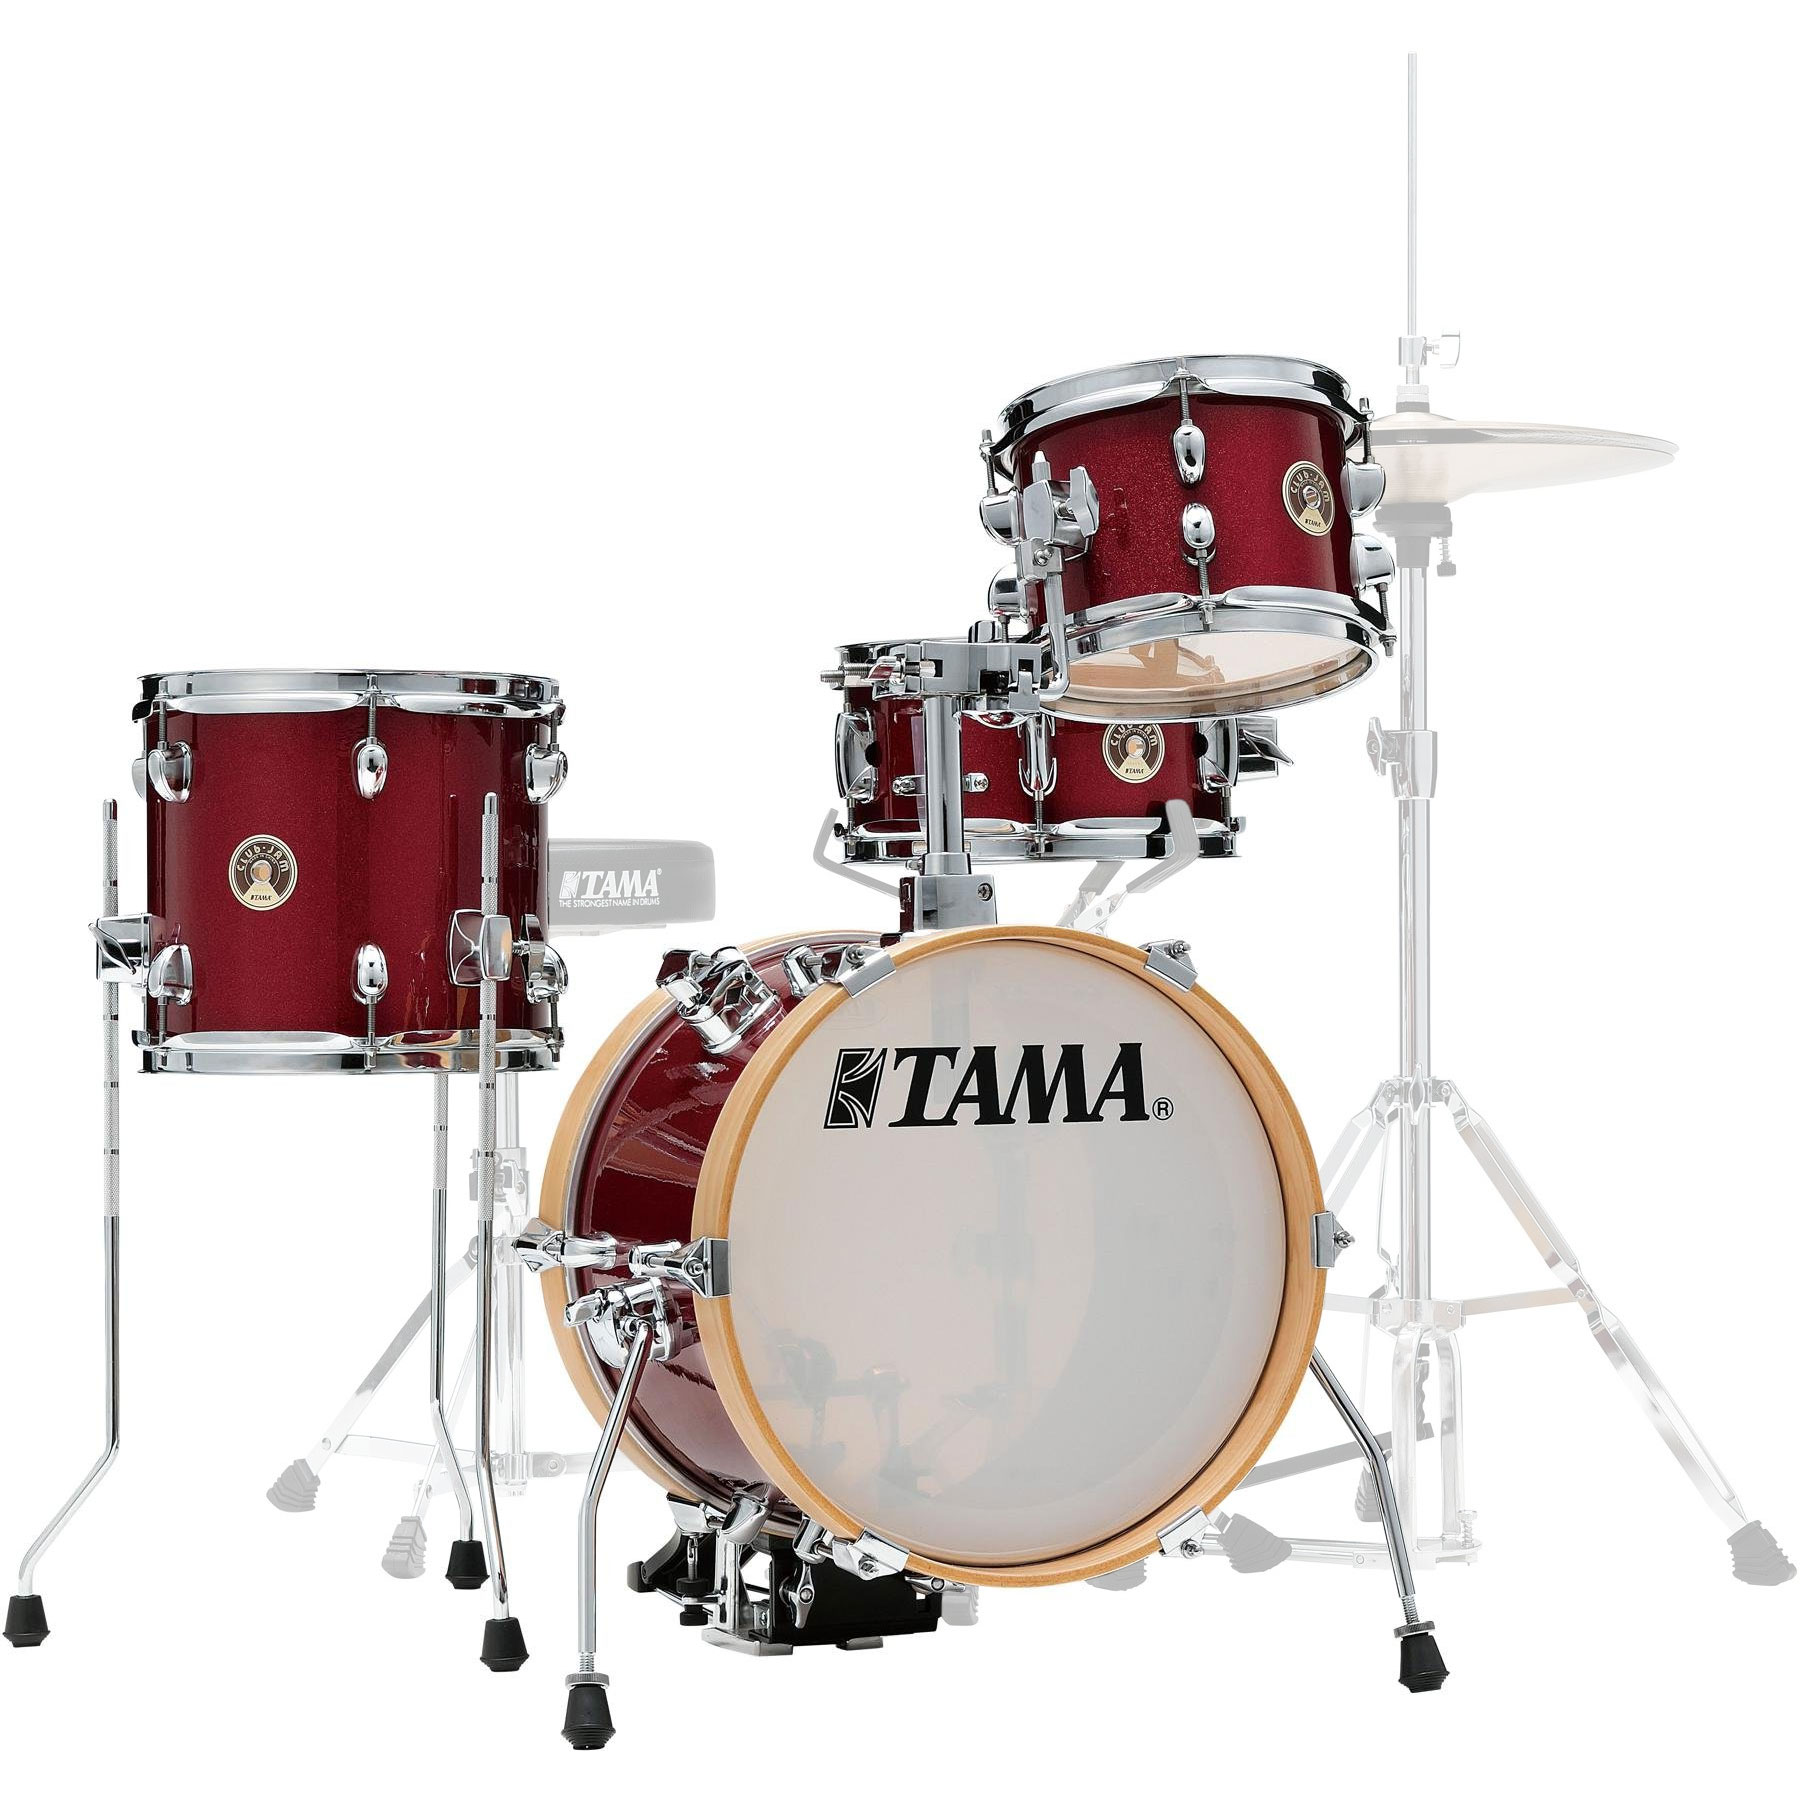 "Tama Club-Jam Flyer 4-Piece Drum Set Shell Pack (14"" Bass, 8/10"" Toms, 10"" Snare) in Candy Apple Mist"